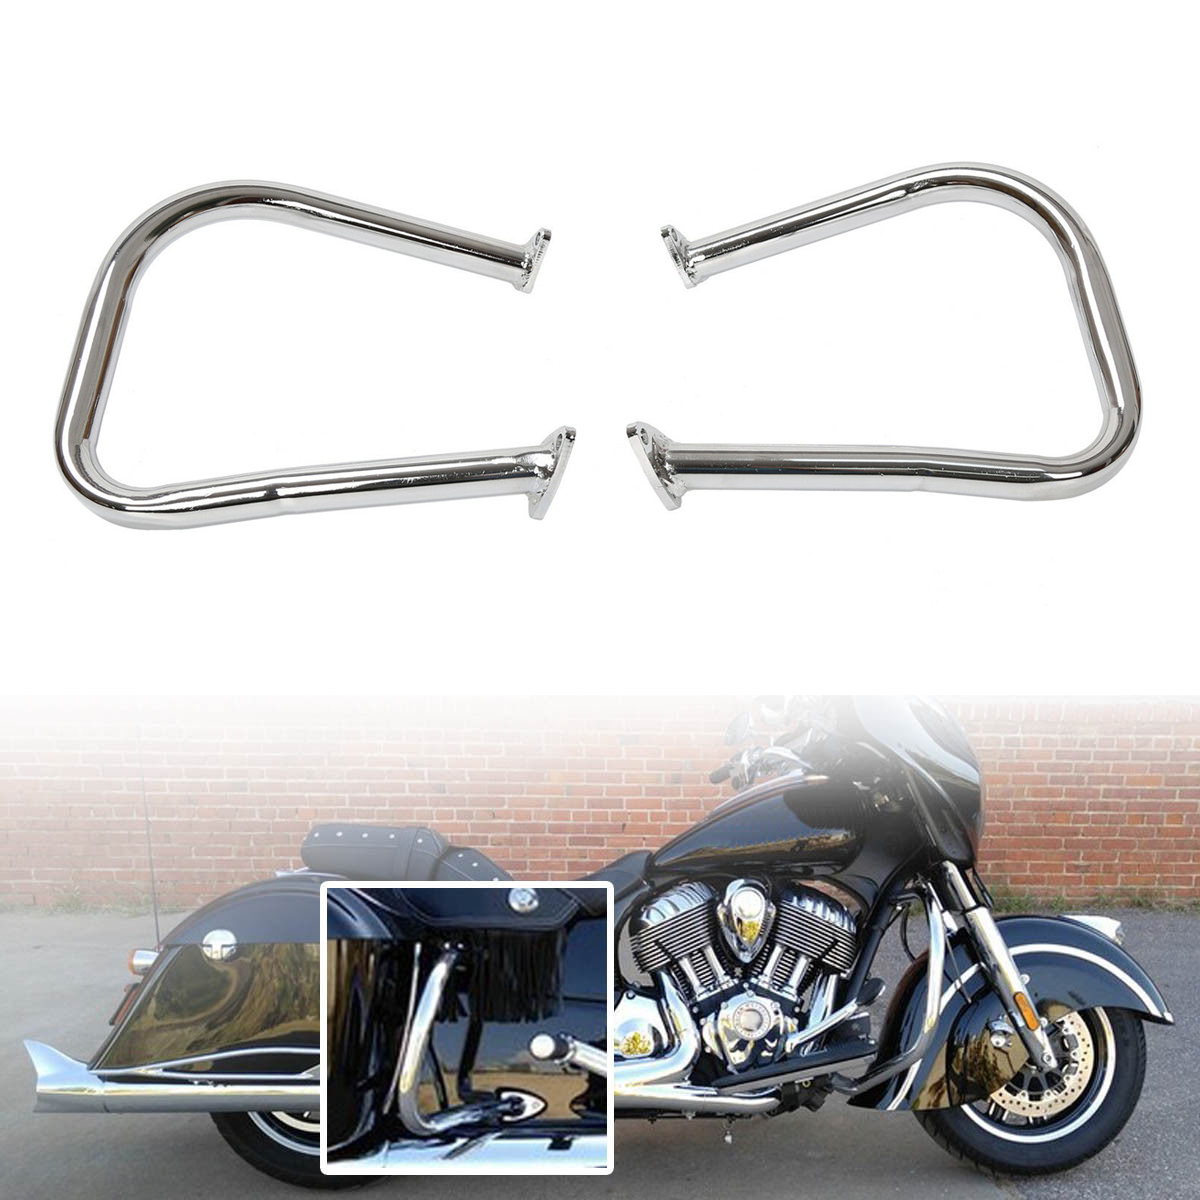 Motorcycle Rear Highway Bars For Indian Chief Chieftain 14-19 Roadmaster silver